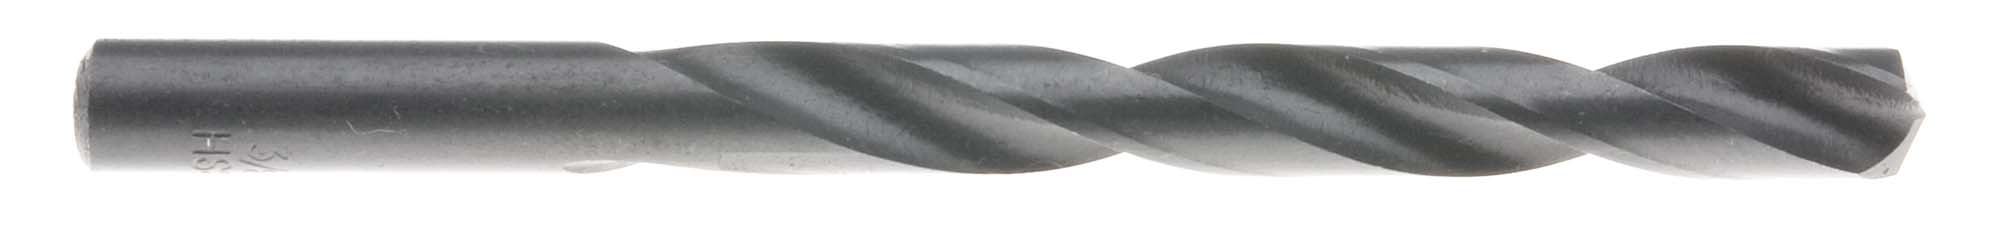 "JSP-5/64  5/64"" Heavy Duty 135 Degree Split Point Jobber Length Drill Bit, High Speed Steel"